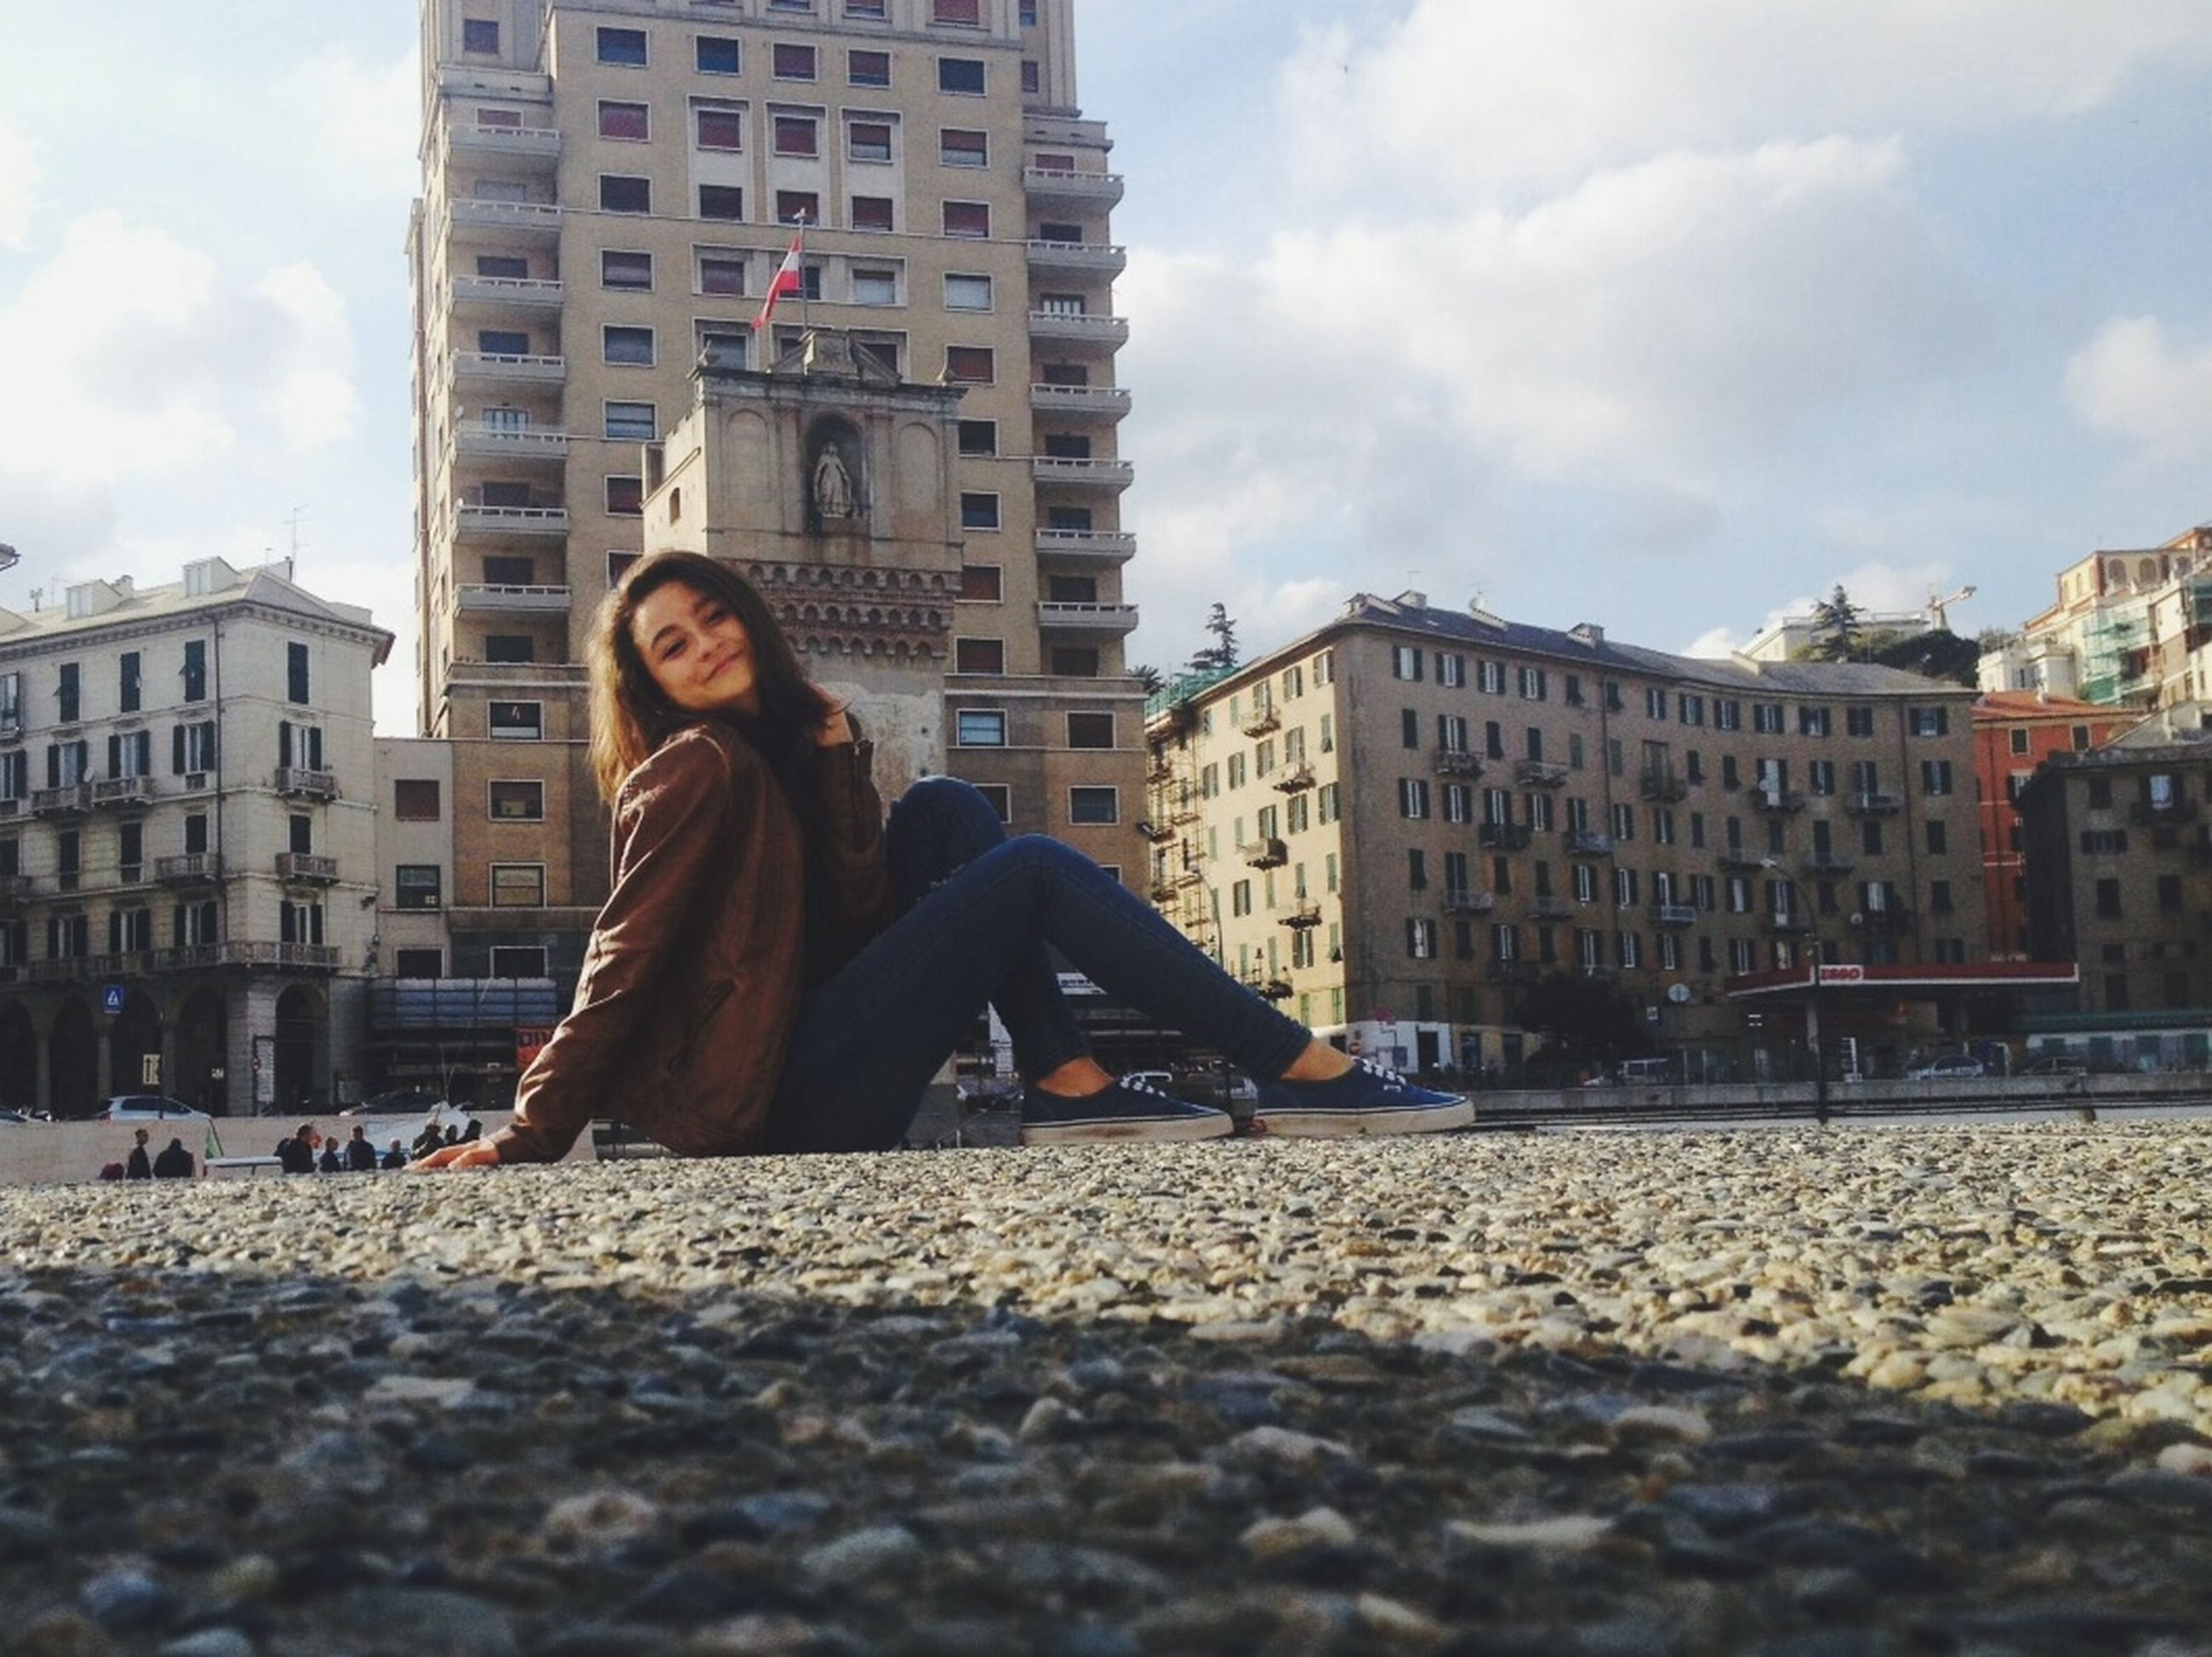 building exterior, architecture, built structure, lifestyles, sky, young adult, leisure activity, city, casual clothing, street, cloud - sky, sitting, full length, person, city life, sunglasses, day, young women